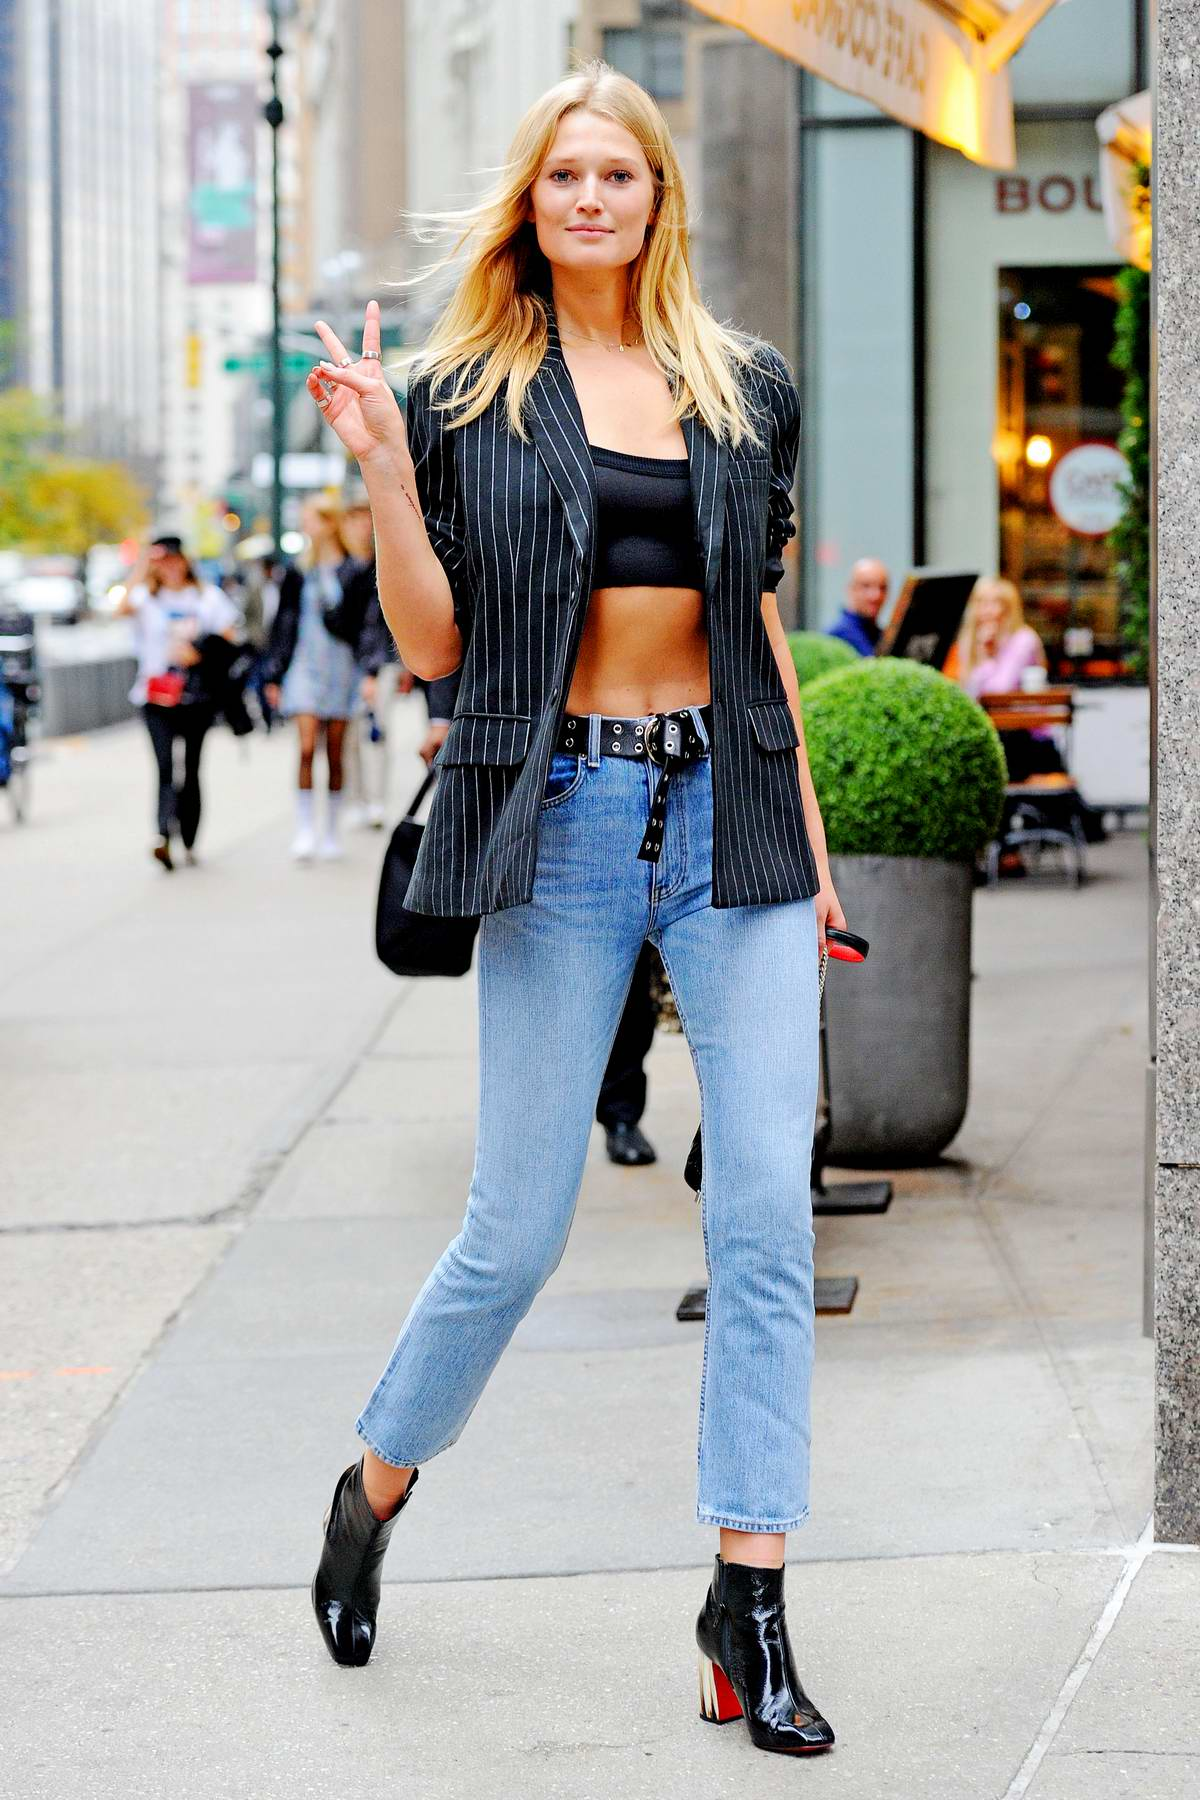 Toni Garrn stuns in a pinstriped blazer paired with a crop top, jeans and black boots as she leaves the Victoria's Secret offices in New York City